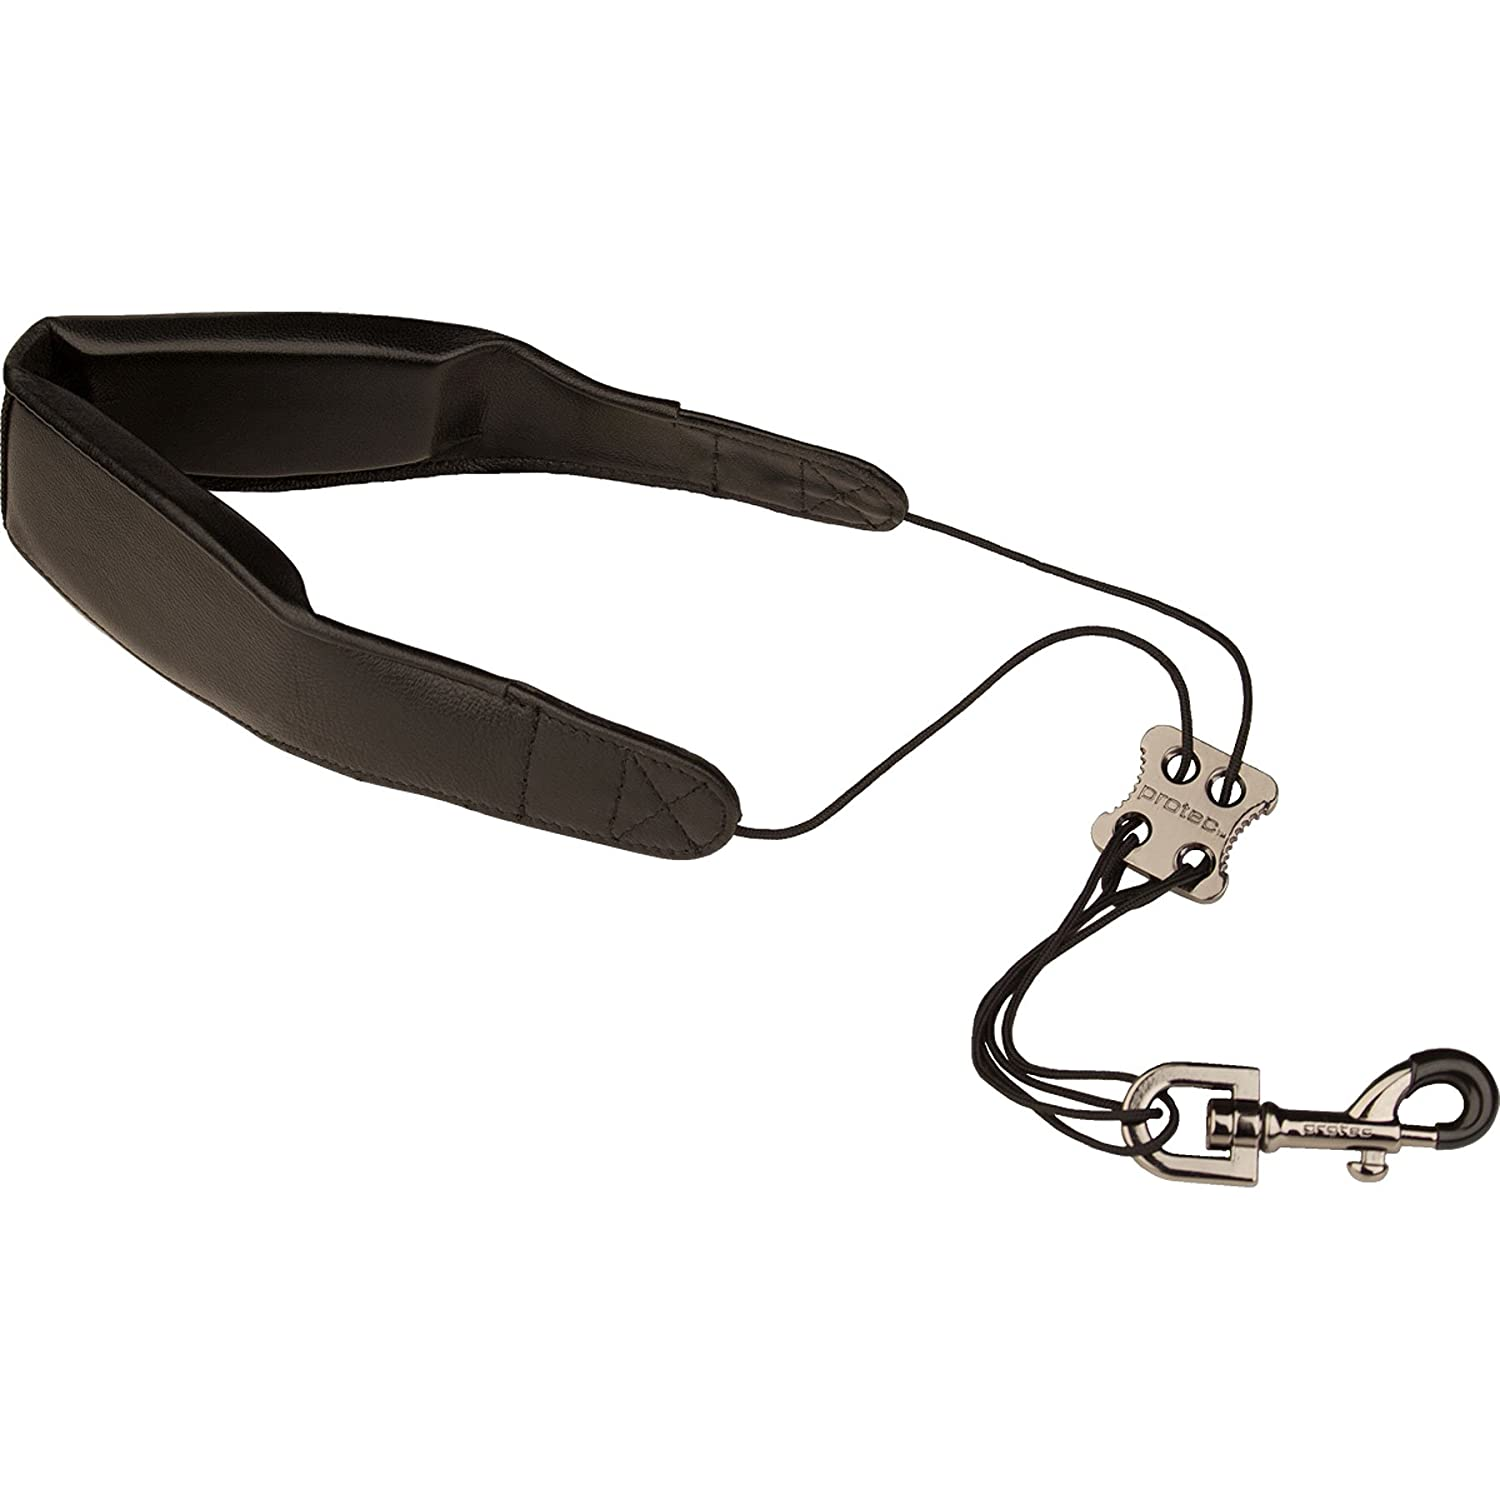 Protec 24-Inch Leather Less-Stress Saxophone Neck Strap with Deluxe Metal Trigger Snap L305M